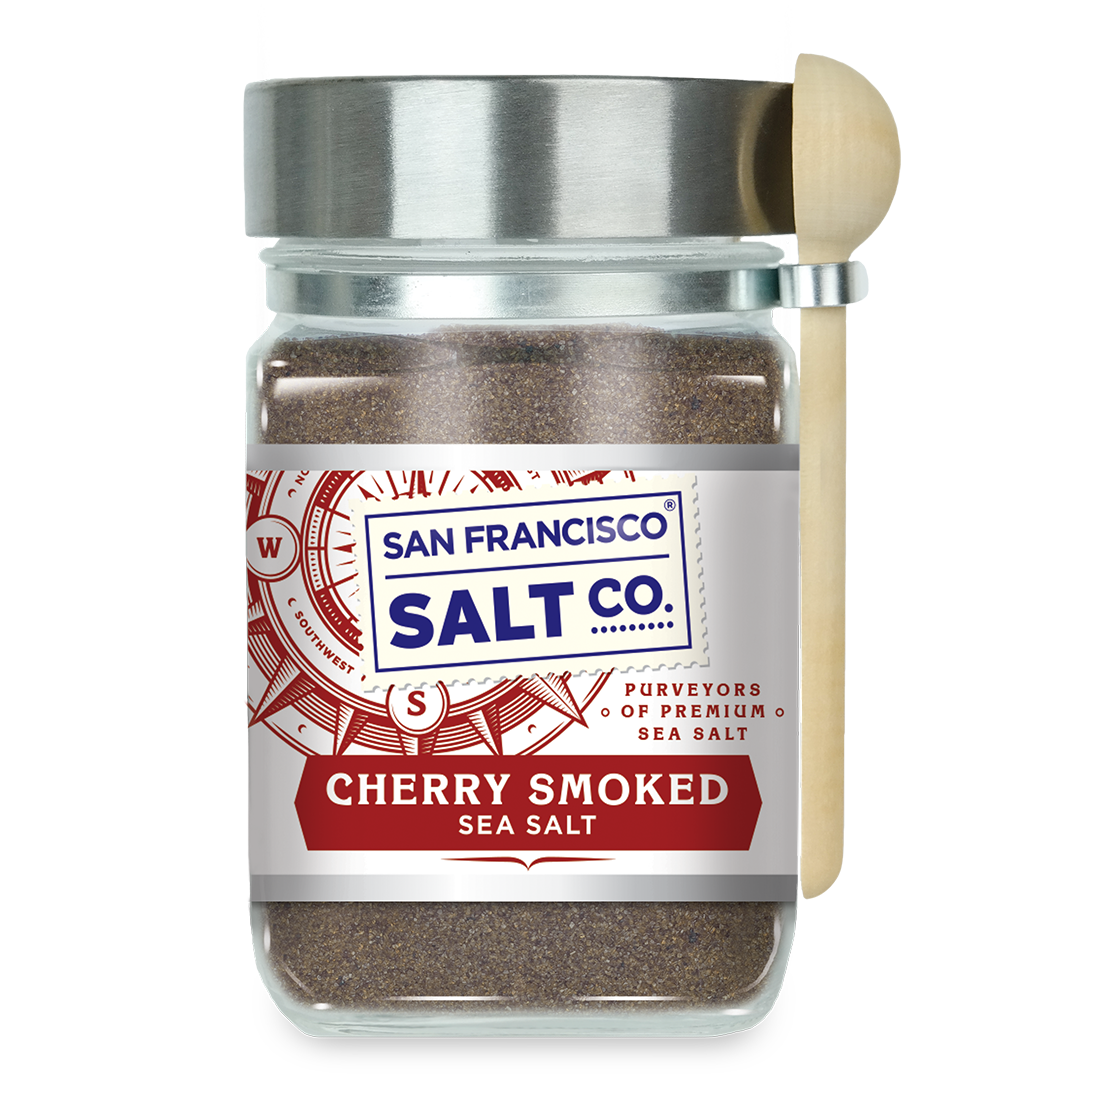 Smoked Cherrywood Salt 8 oz. Chef's Jar - San Francisco Salt Company